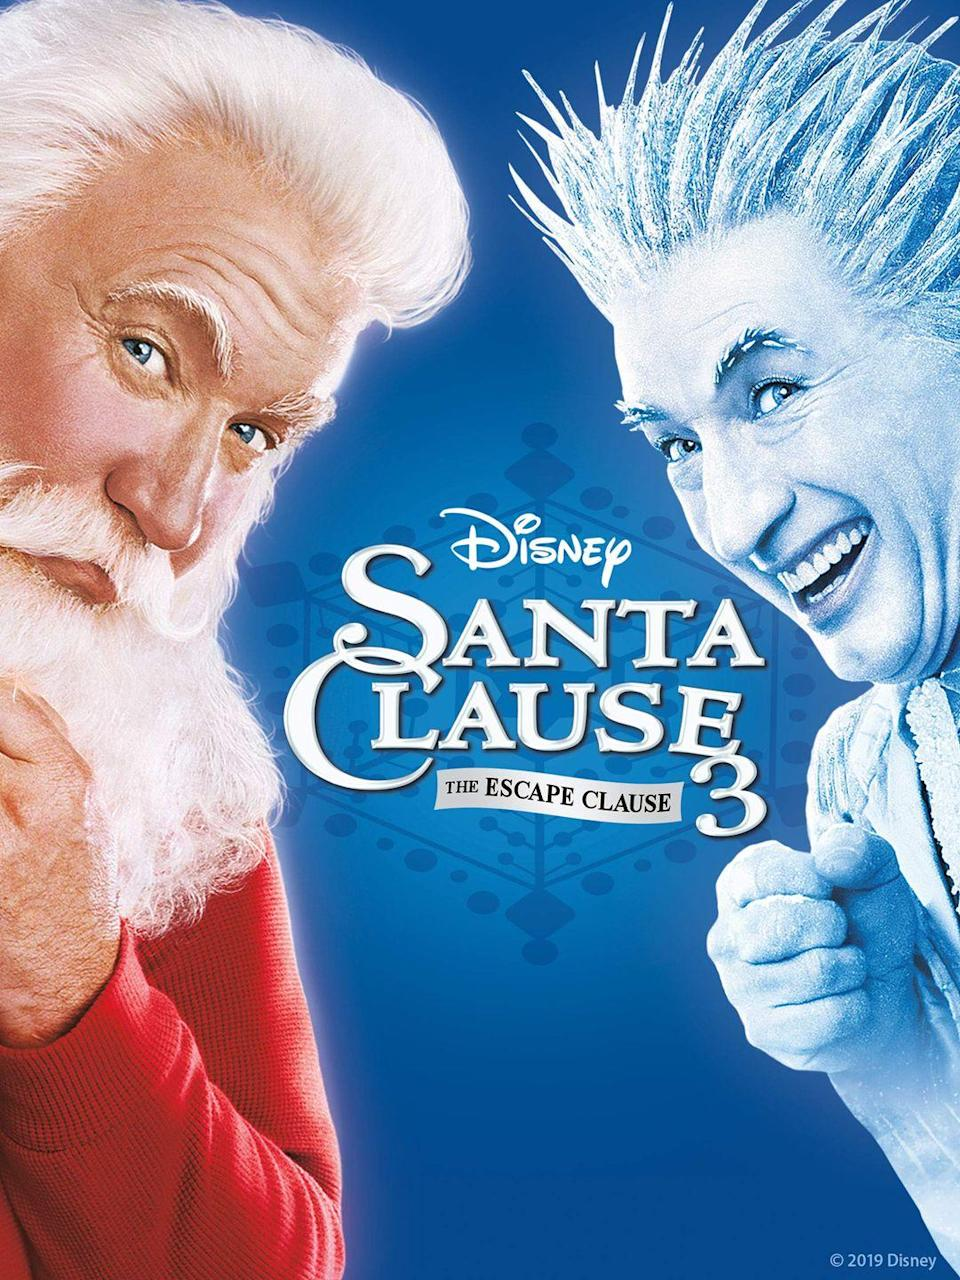 "<p><a class=""link rapid-noclick-resp"" href=""https://go.redirectingat.com?id=74968X1596630&url=https%3A%2F%2Fwww.disneyplus.com%2Fmovies%2Fthe-santa-clause-3-the-escape-clause%2F7CW6rADl8JsT&sref=https%3A%2F%2Fwww.womansday.com%2Flife%2Fentertainment%2Fg34694772%2Fdisney-christmas-movies%2F"" rel=""nofollow noopener"" target=""_blank"" data-ylk=""slk:STREAM NOW"">STREAM NOW</a></p><p>In the final movie in the <em>Santa Clause</em> trilogy, Scott (Tim Allen) must fend off Jack Frost (Martin Short). Jack Frost plans to take over the North Pole, leaving Scott to join forces with his team of elves in order to stop him.</p>"